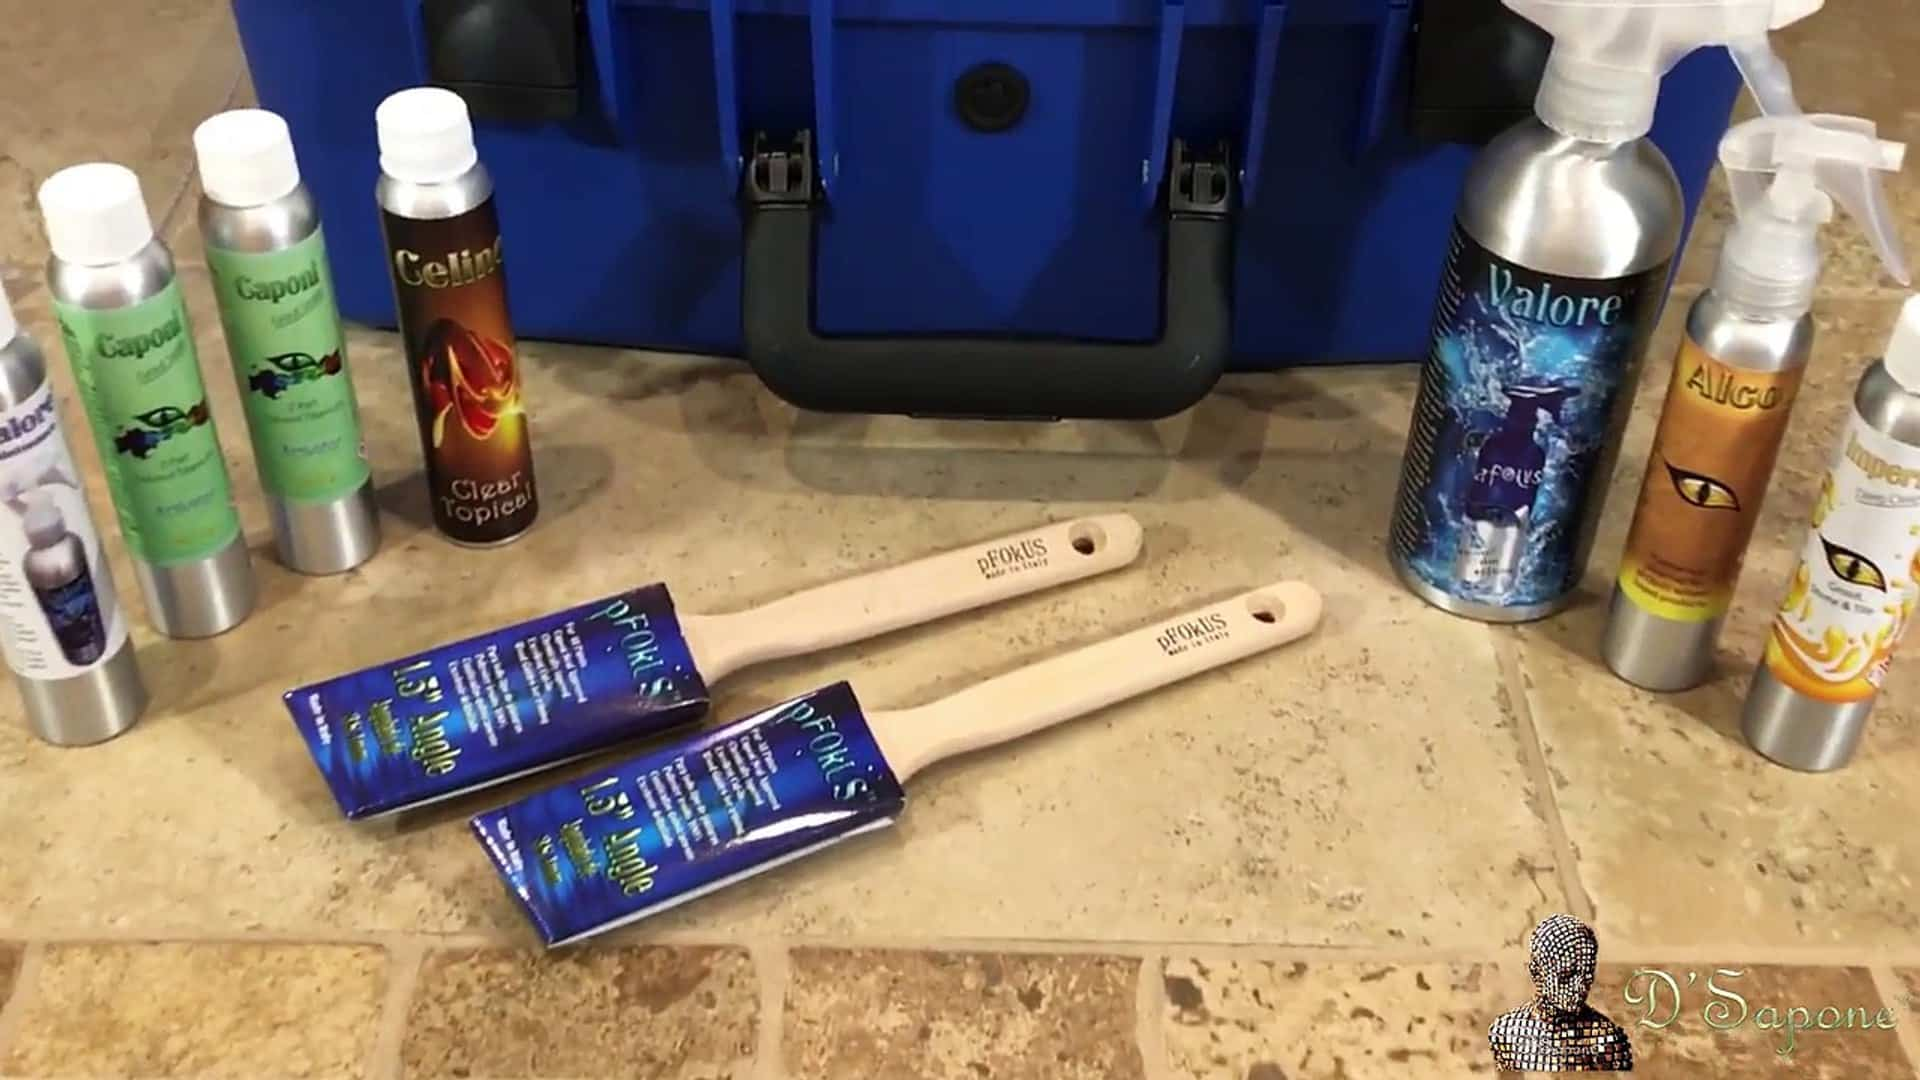 Deep cleaning with pfokus products - D'Sapone